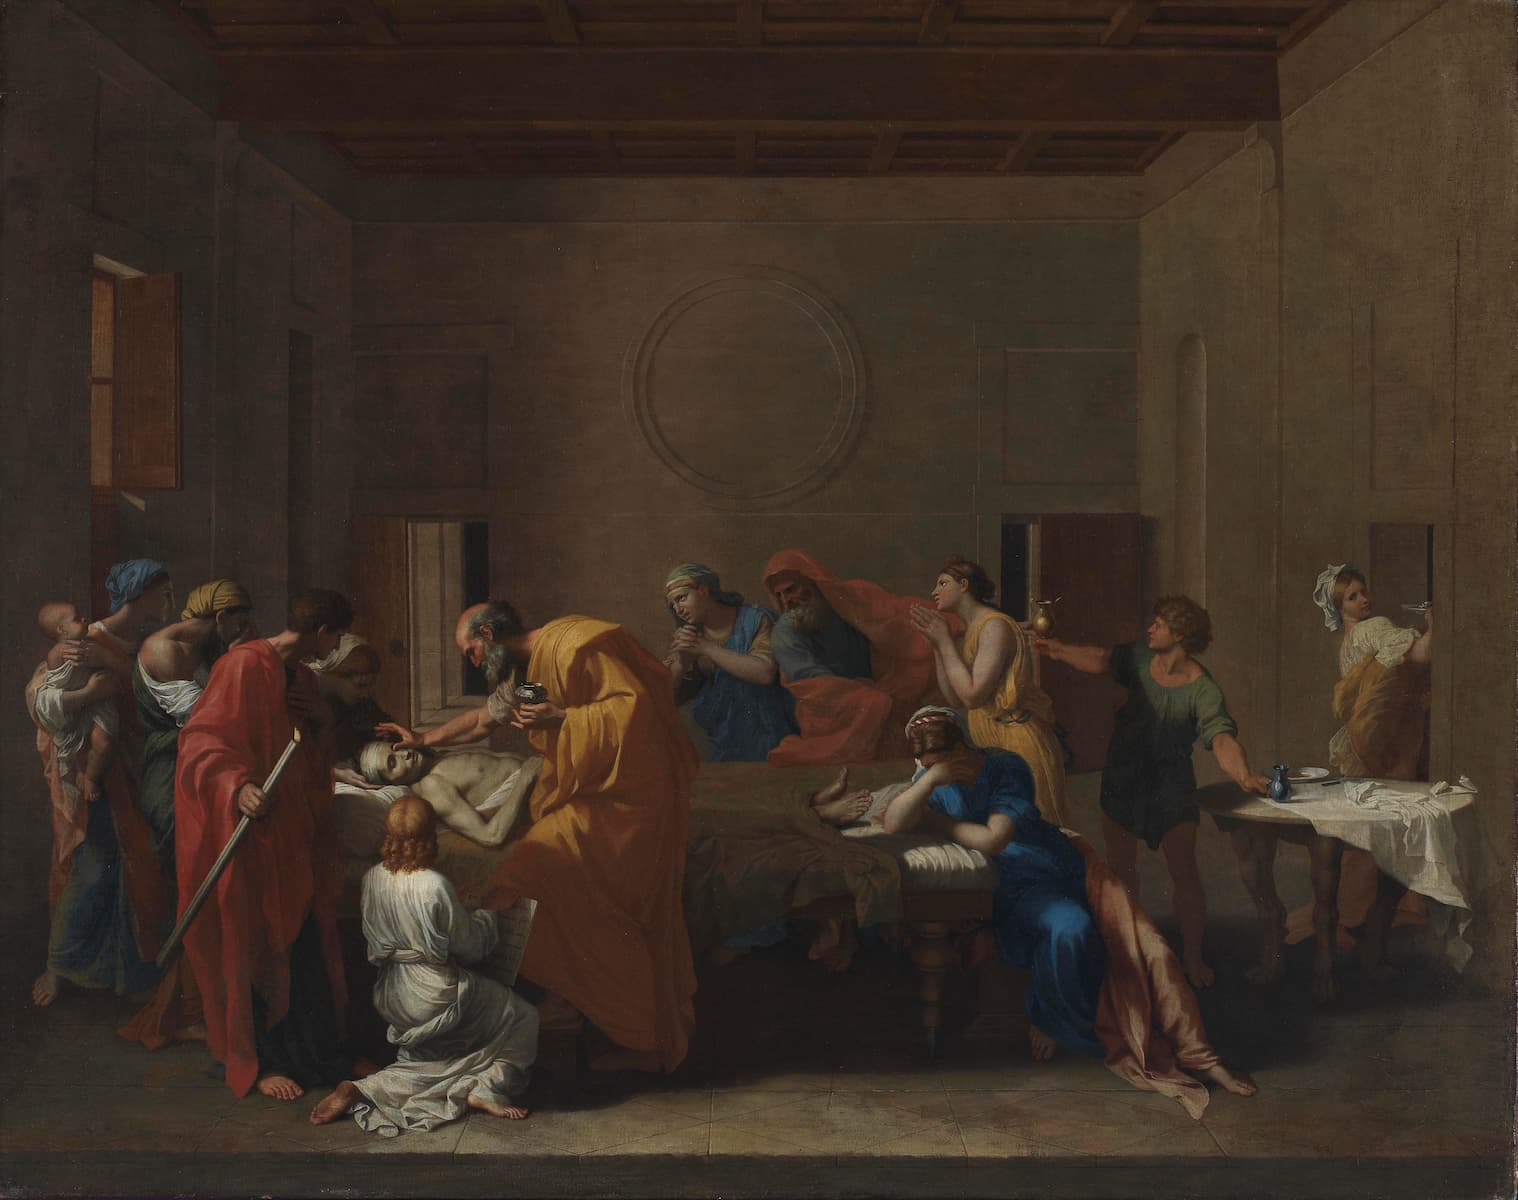 Featured image for the project: Nicolas Poussin's Extreme Unction